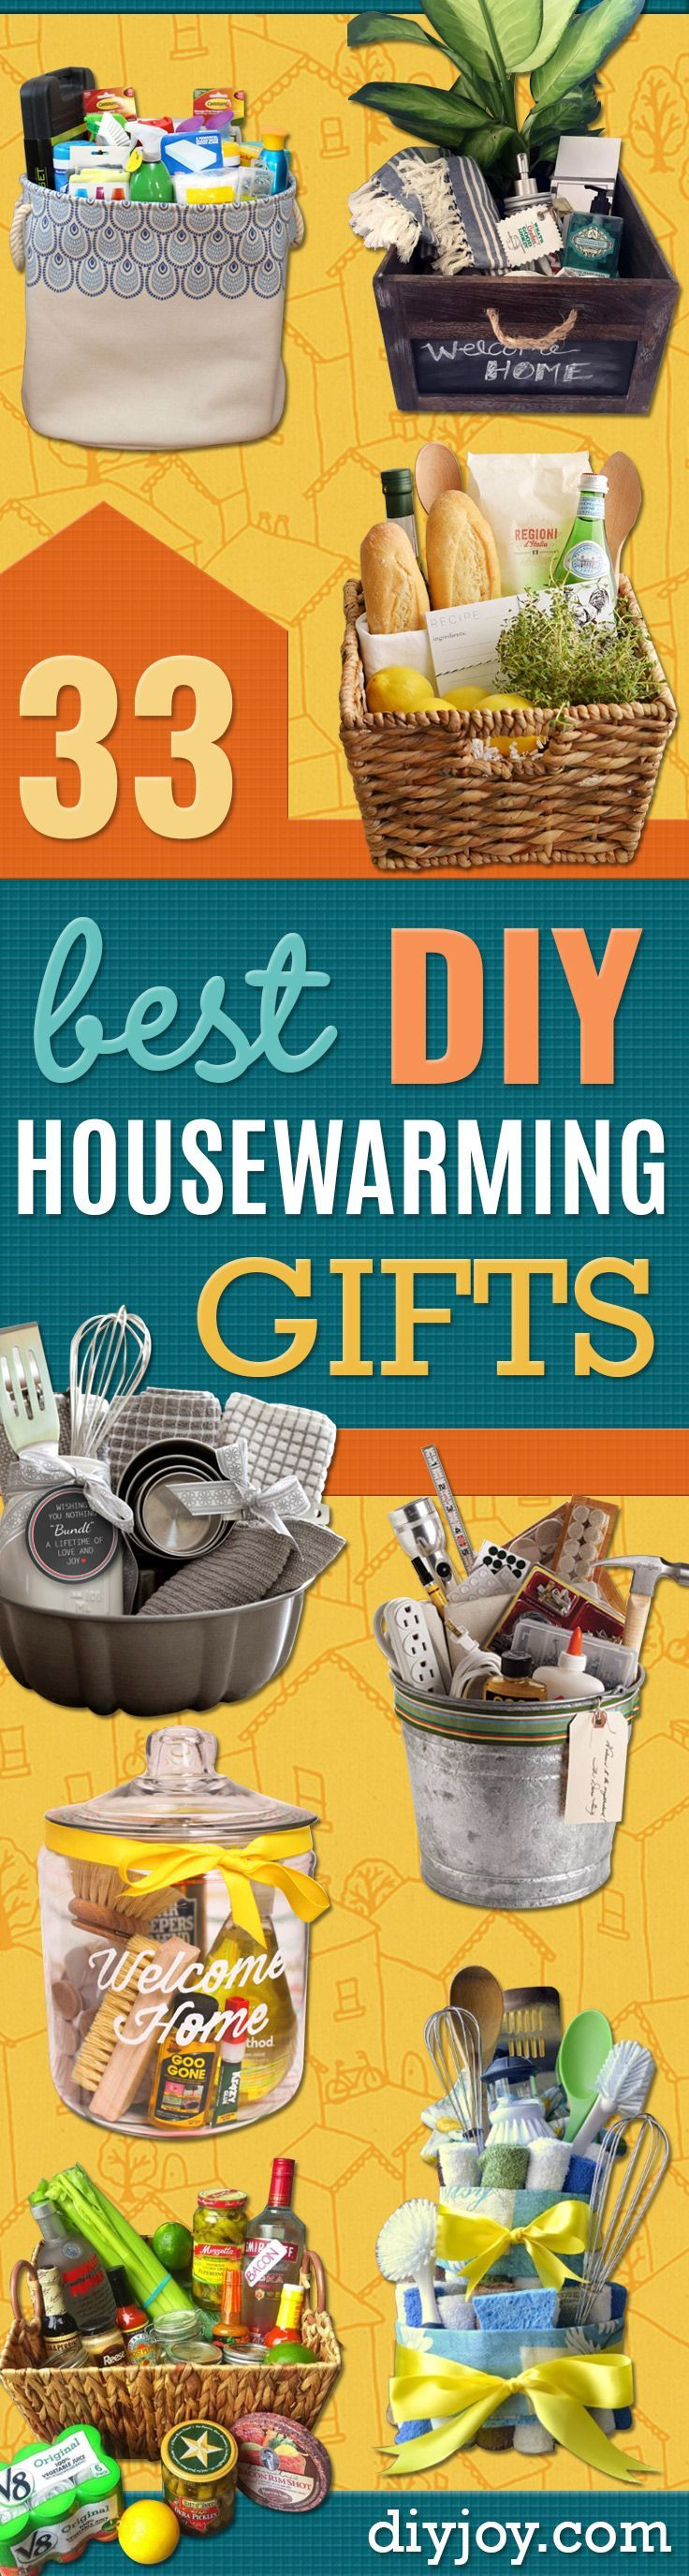 33 best diy housewarming gifts quick crafts basket gift and 33 best diy housewarming gifts solutioingenieria Image collections